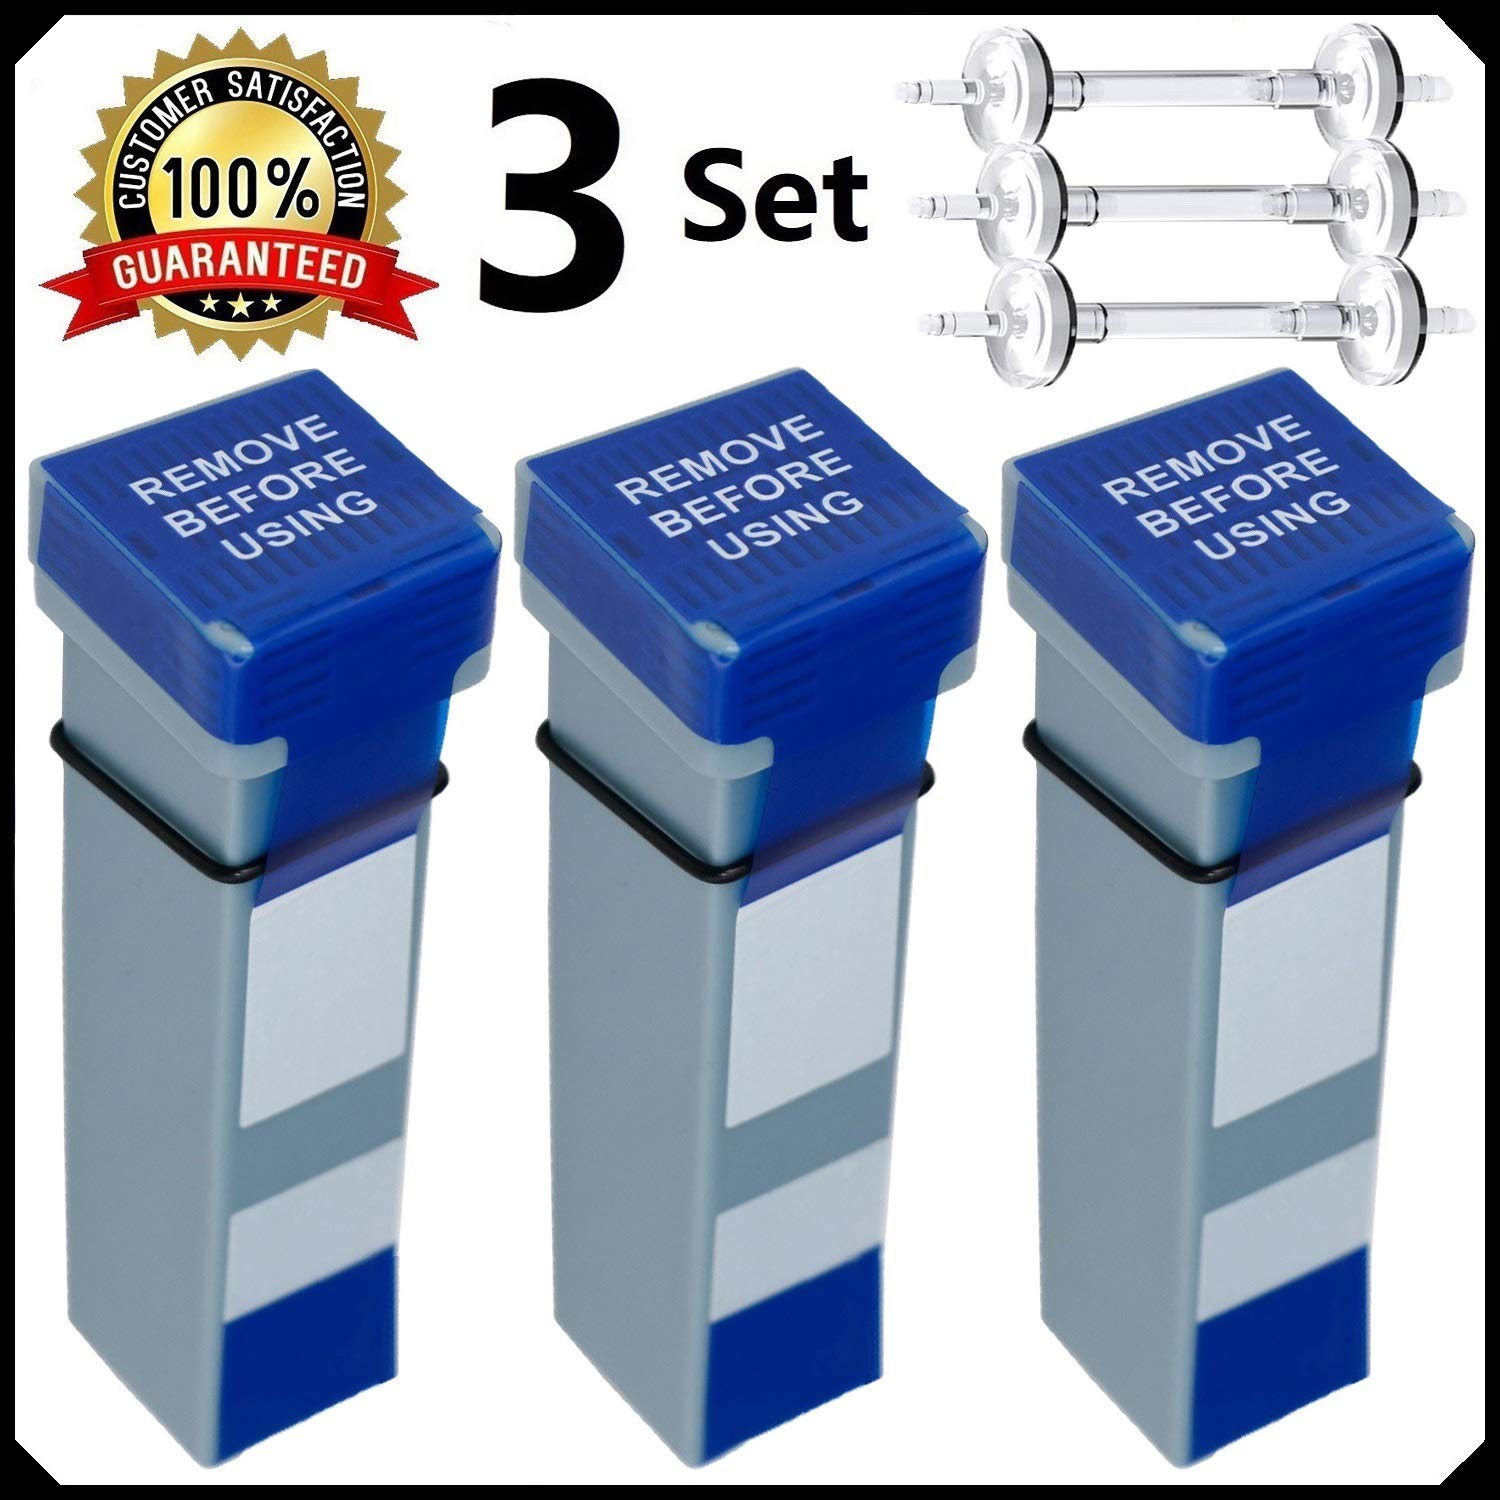 Replacement Cartridge Filter Kit and Check Valve Assembly - Includes 3 Filter Cartridge and 3 Check Valve - Official CPAP Filter Kit Supply - 3 Set